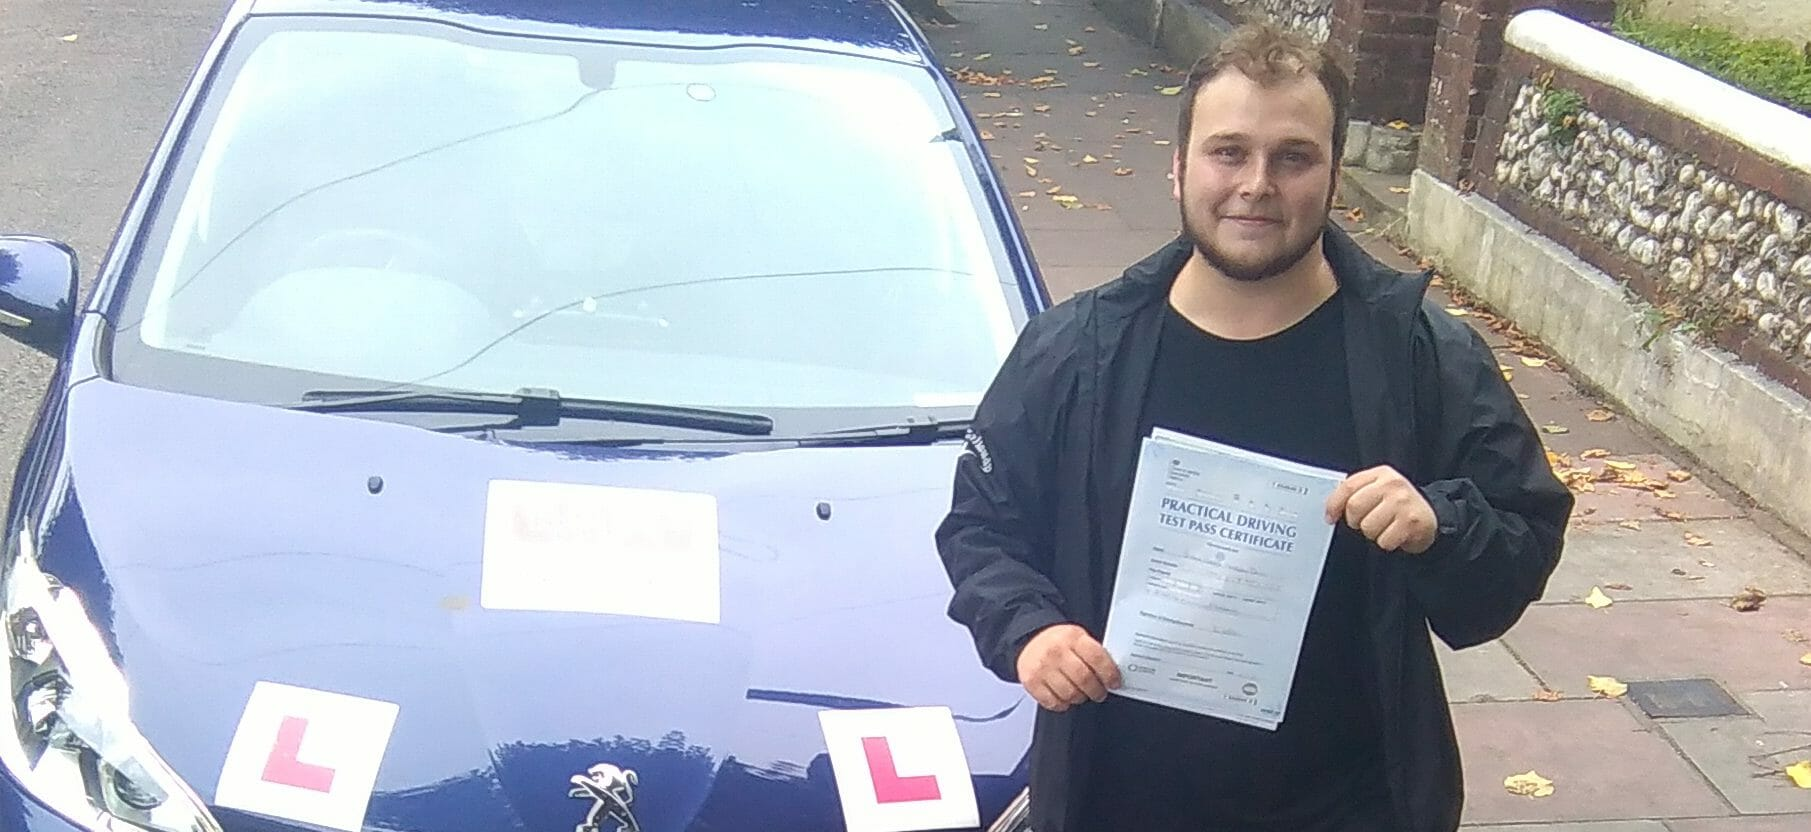 Congratulations to Josh Dann of Worthing